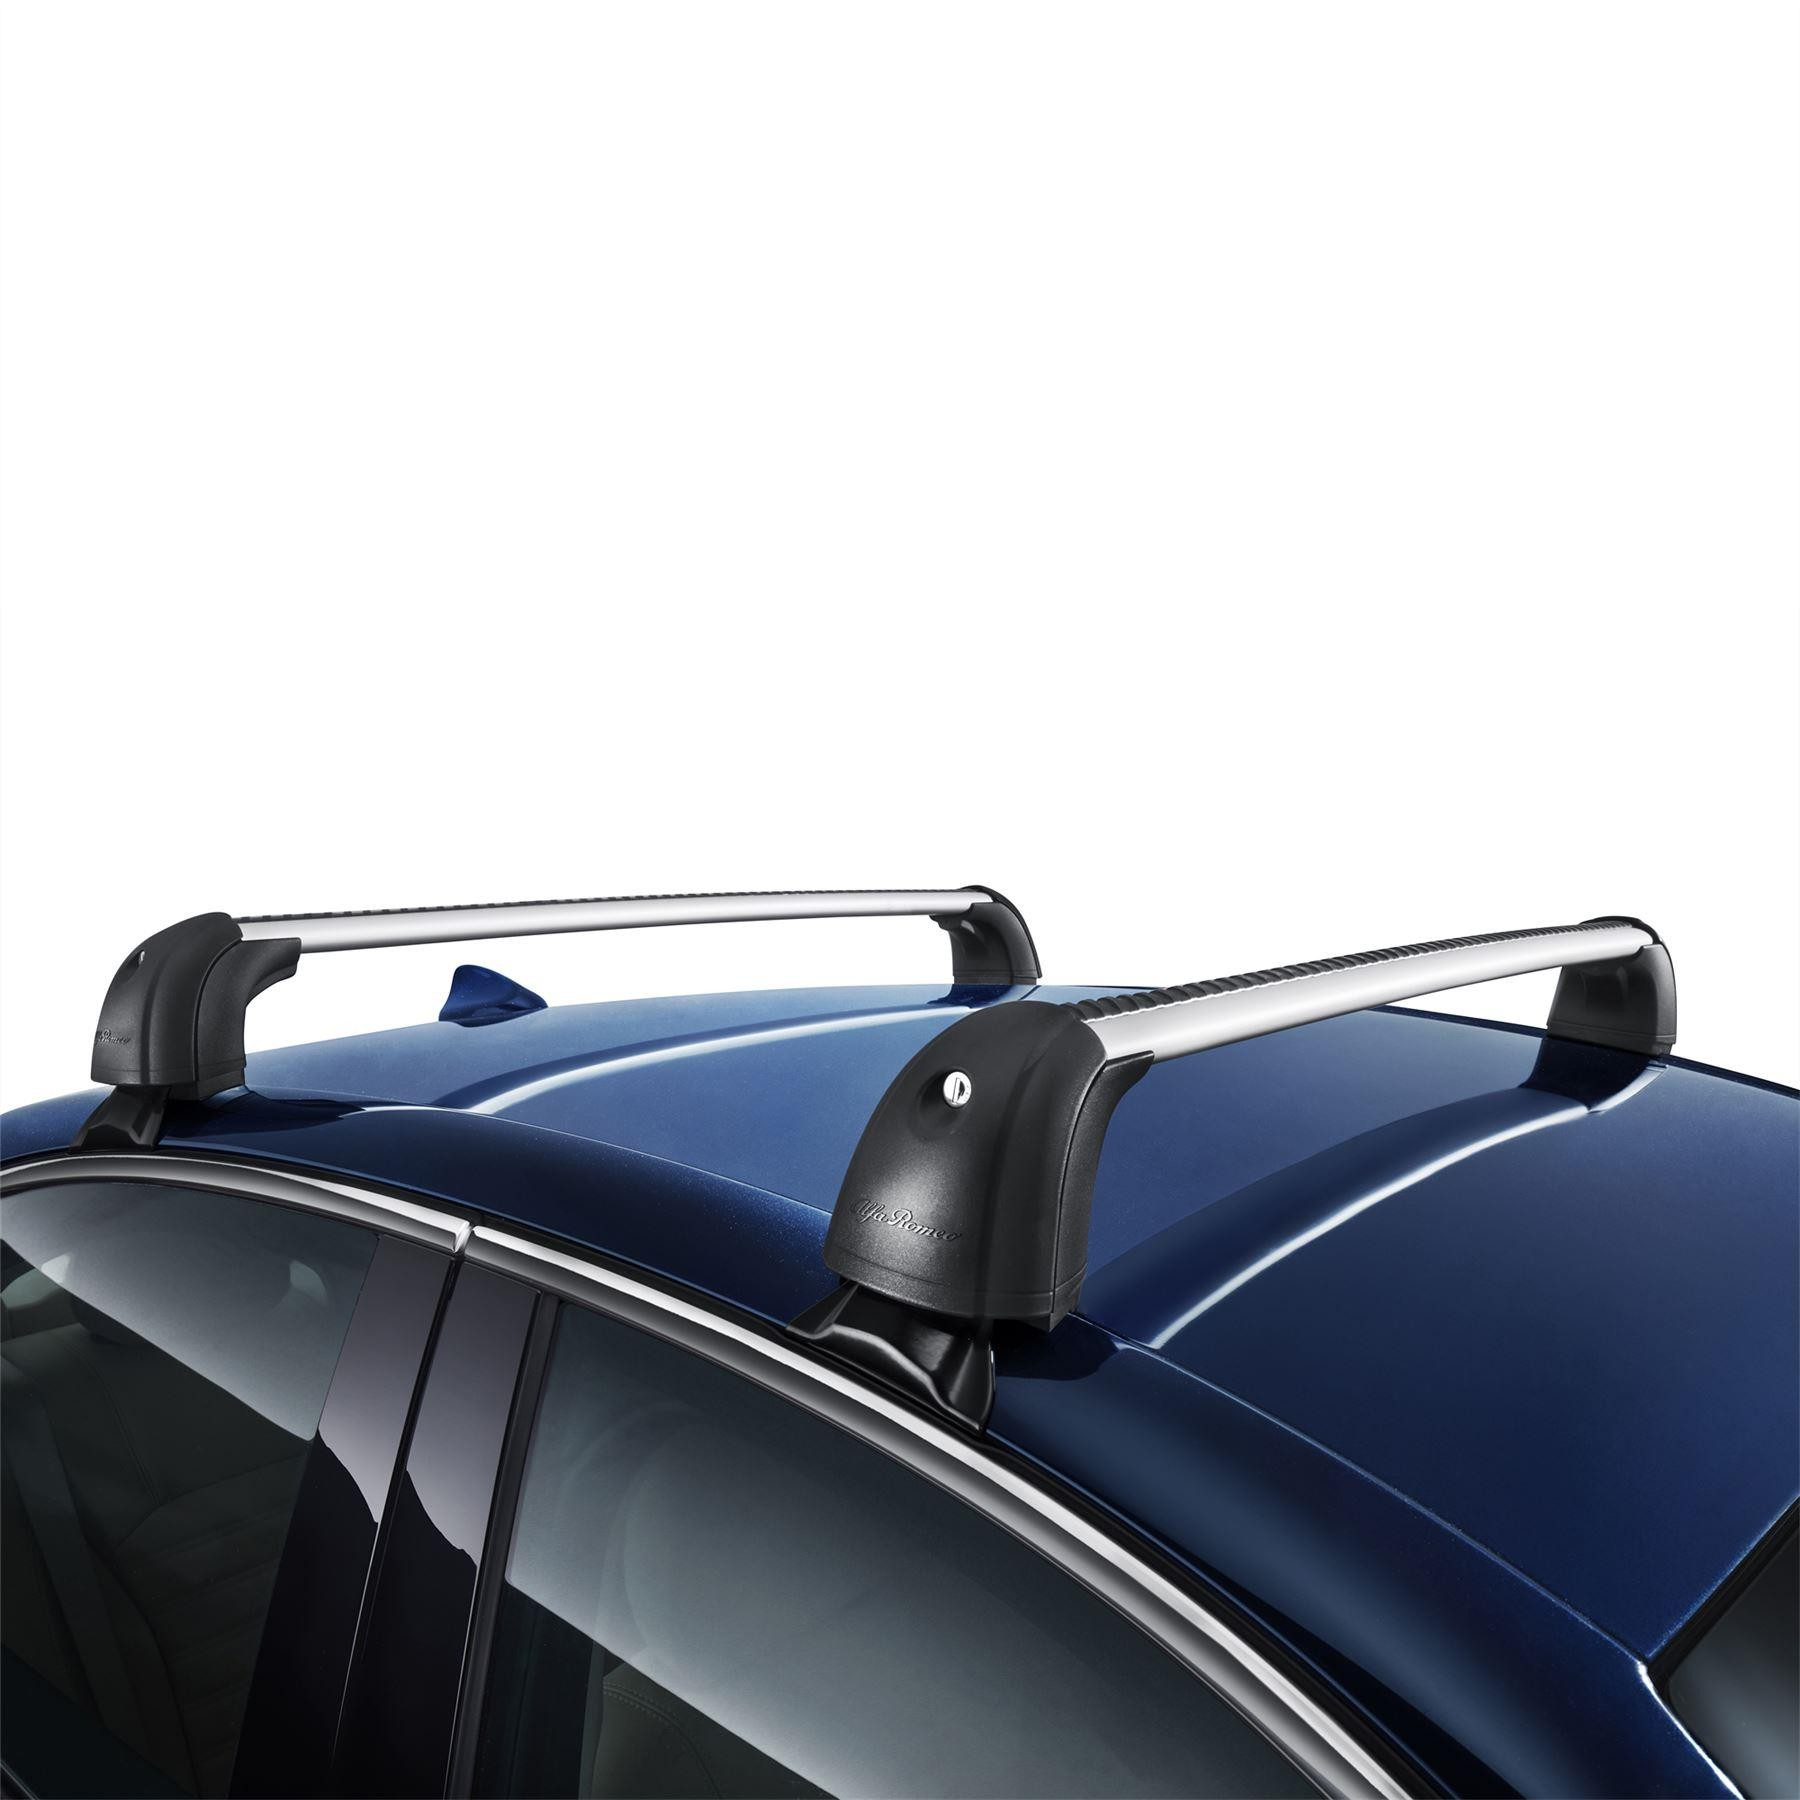 Giulia Transport/Cargo/Load - Roof Bars with Alfa Logo